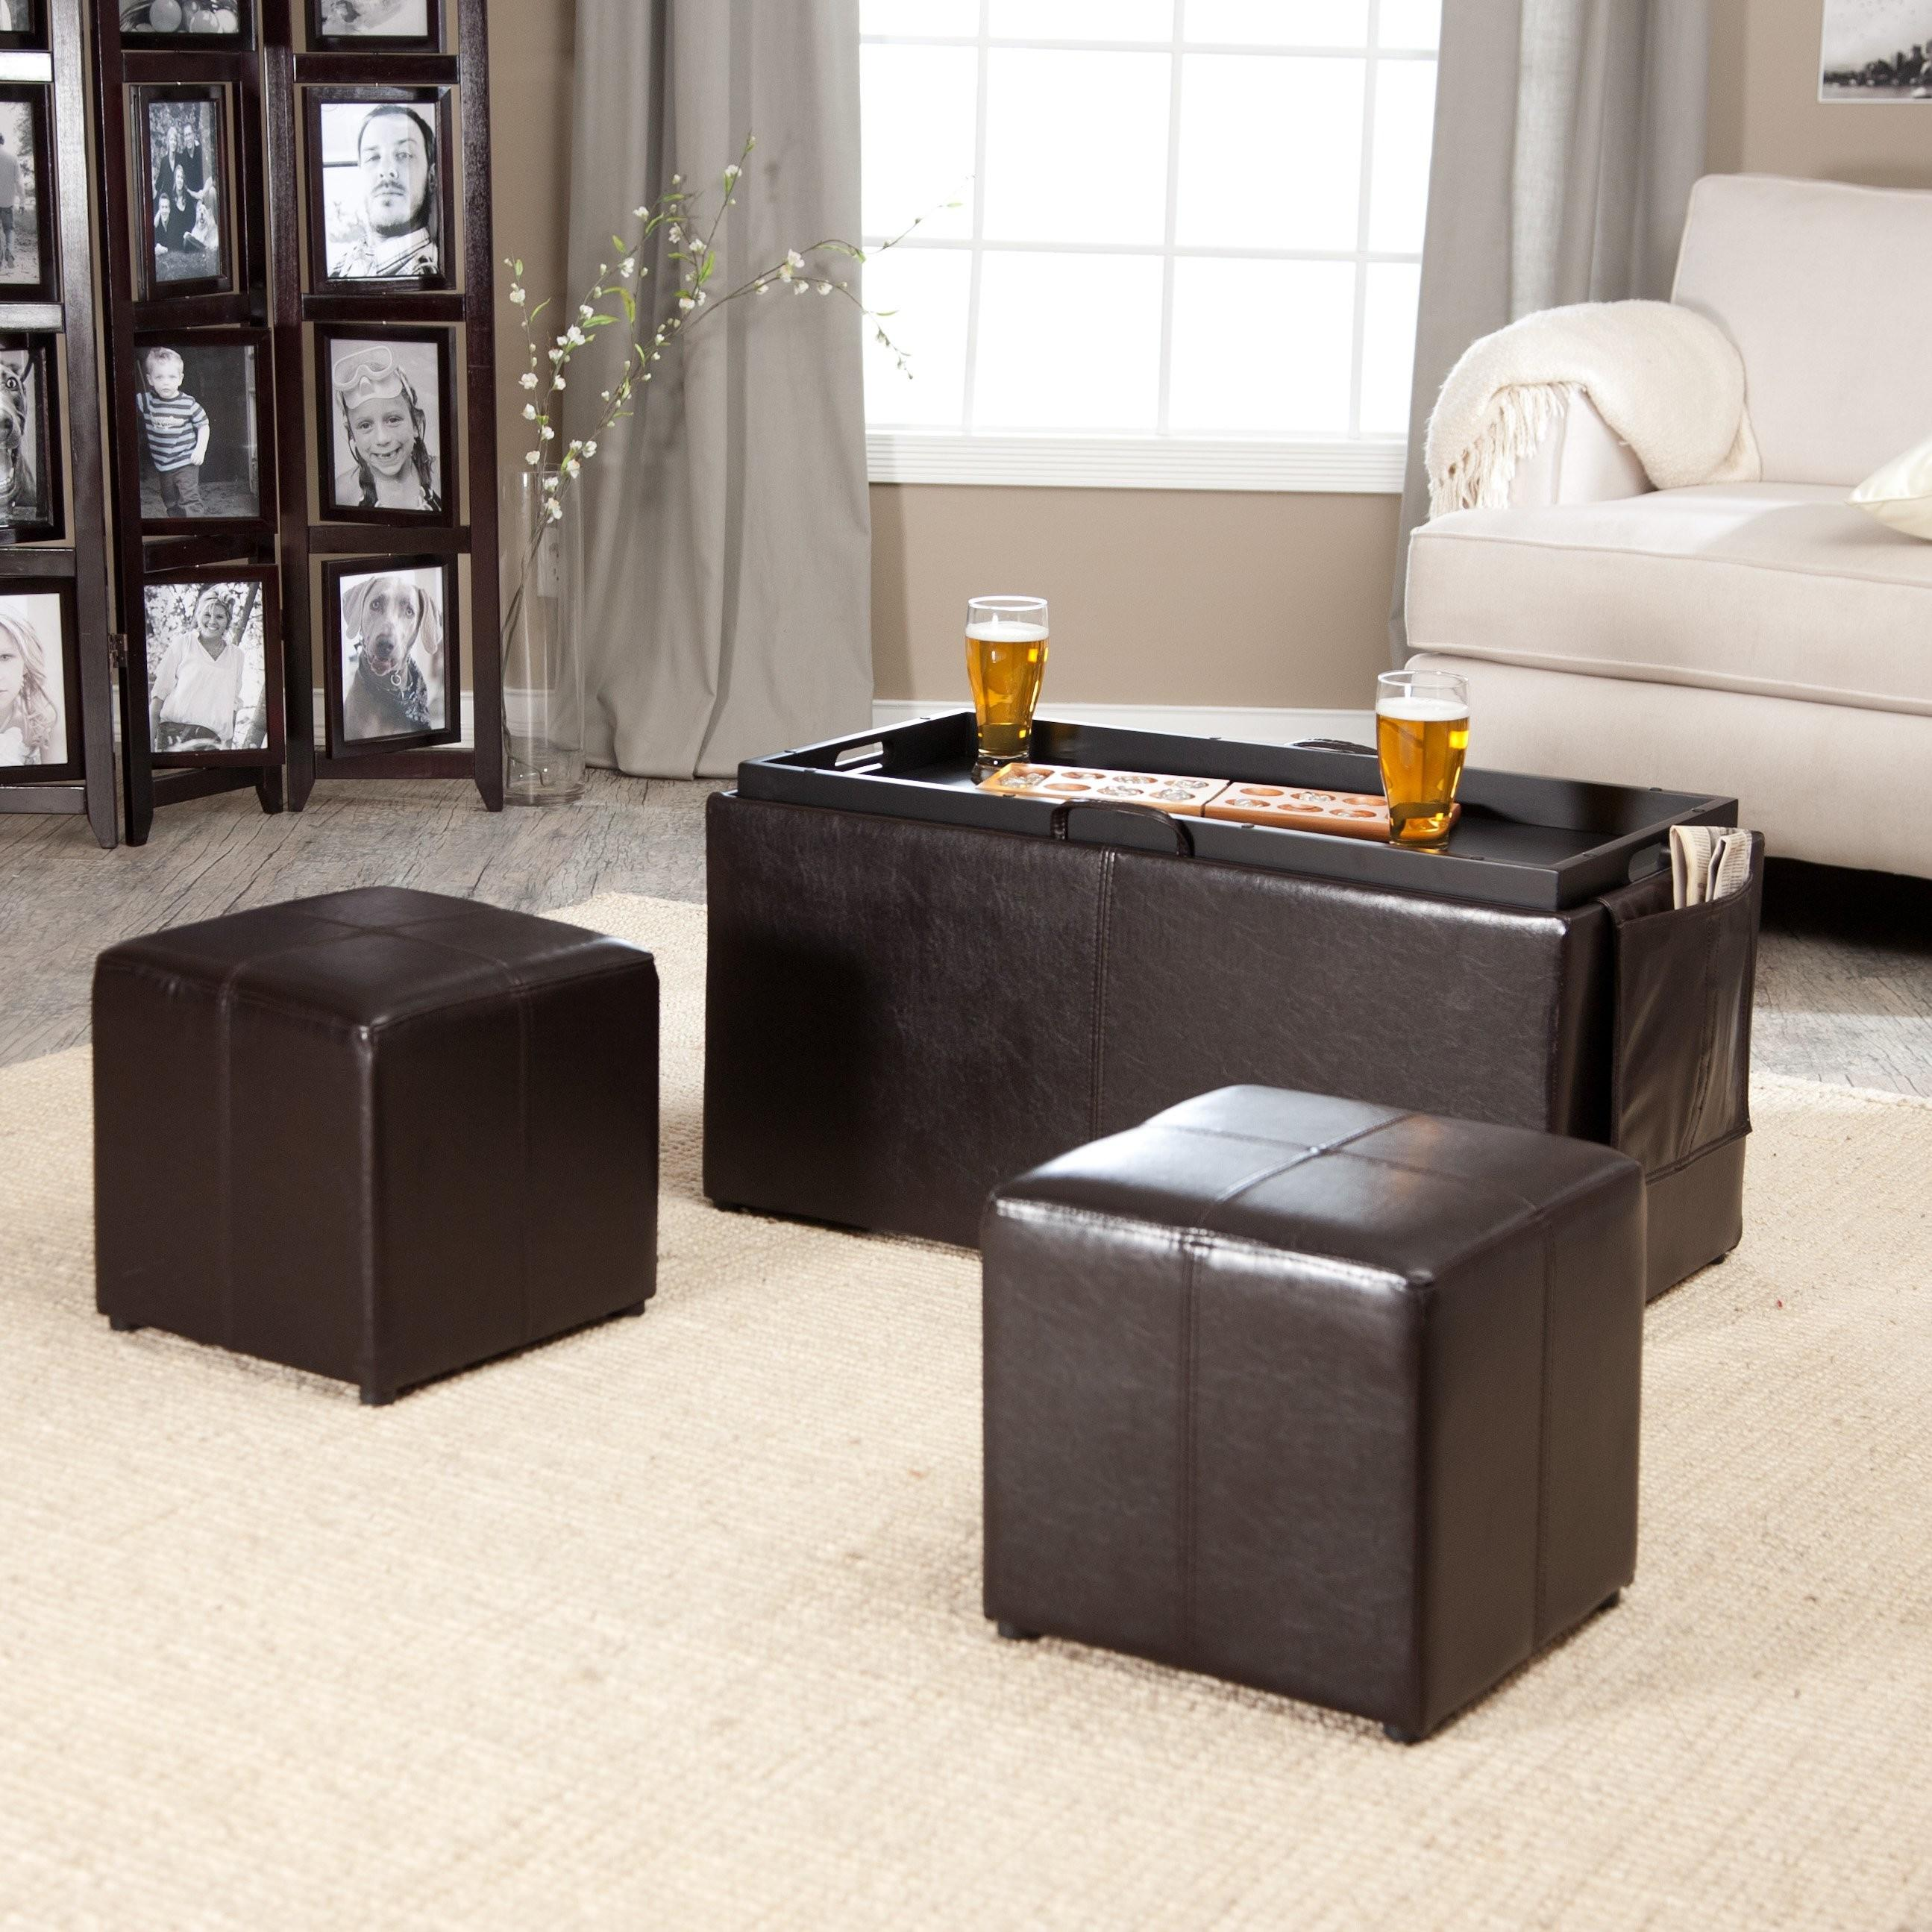 Pouf Ottoman Elegant Decorative